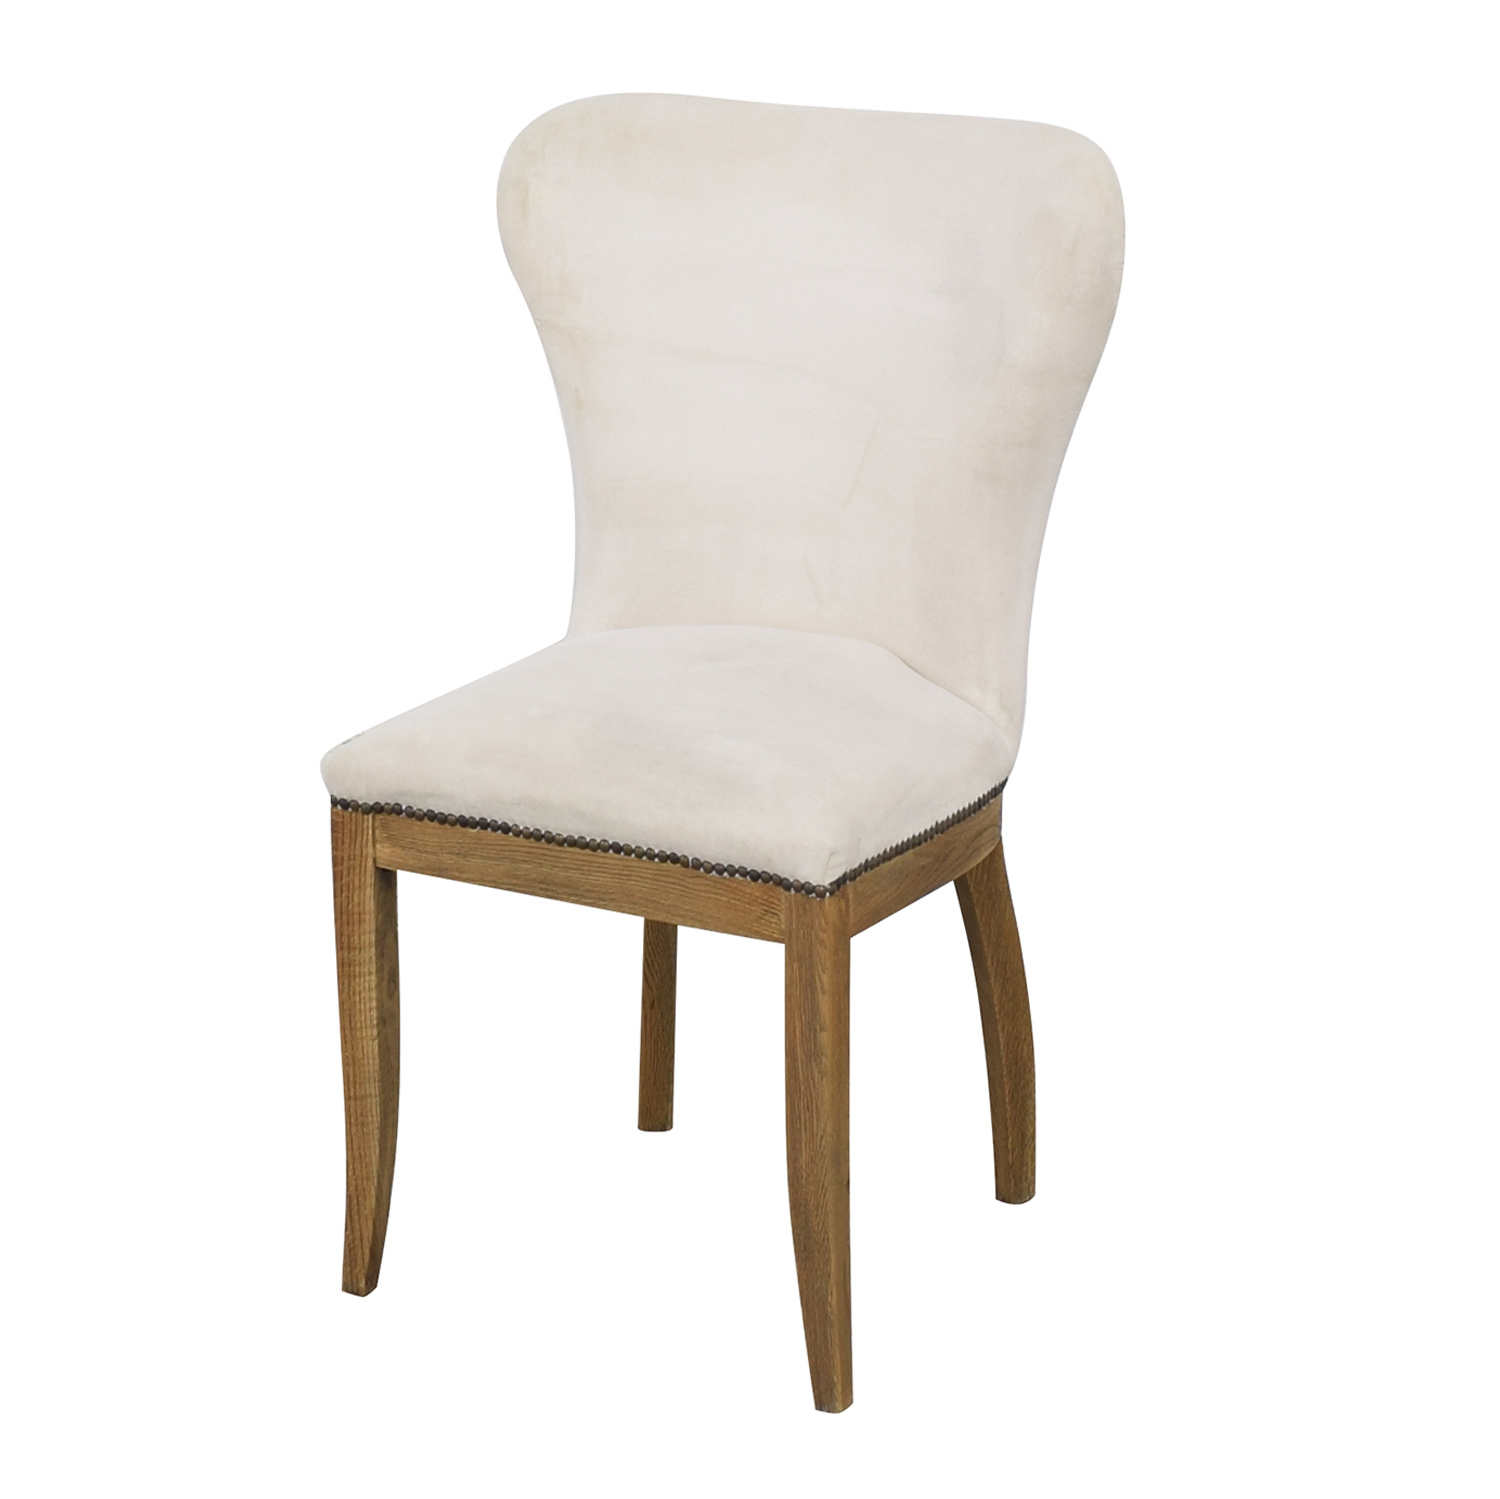 Restoration Hardware Restoration Hardware Upholstered Dining Chairs pa